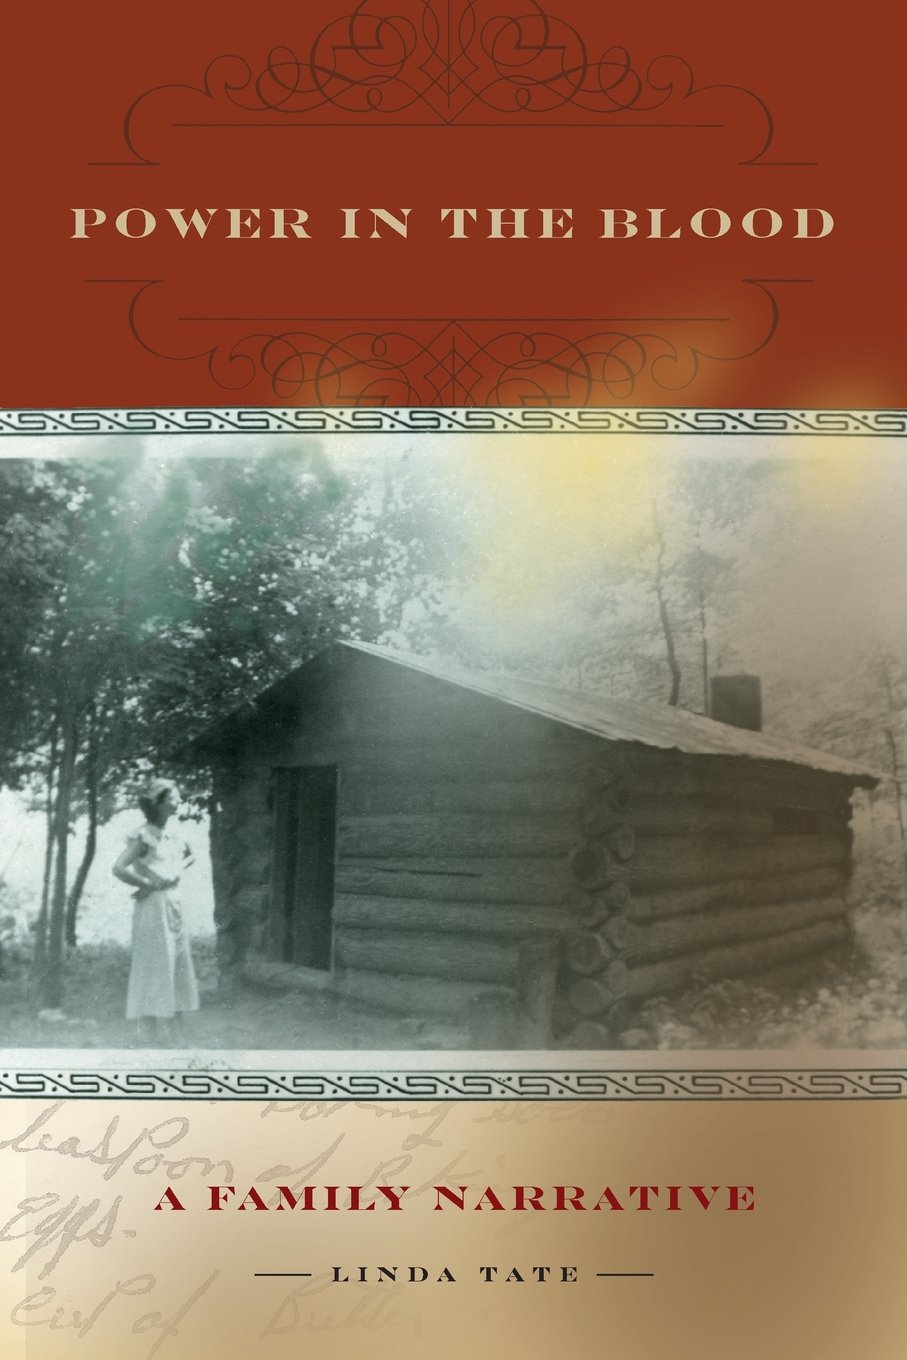 Power in the Blood: A Family Narrative (Race, Ethnicity and Gender in Appalachia)